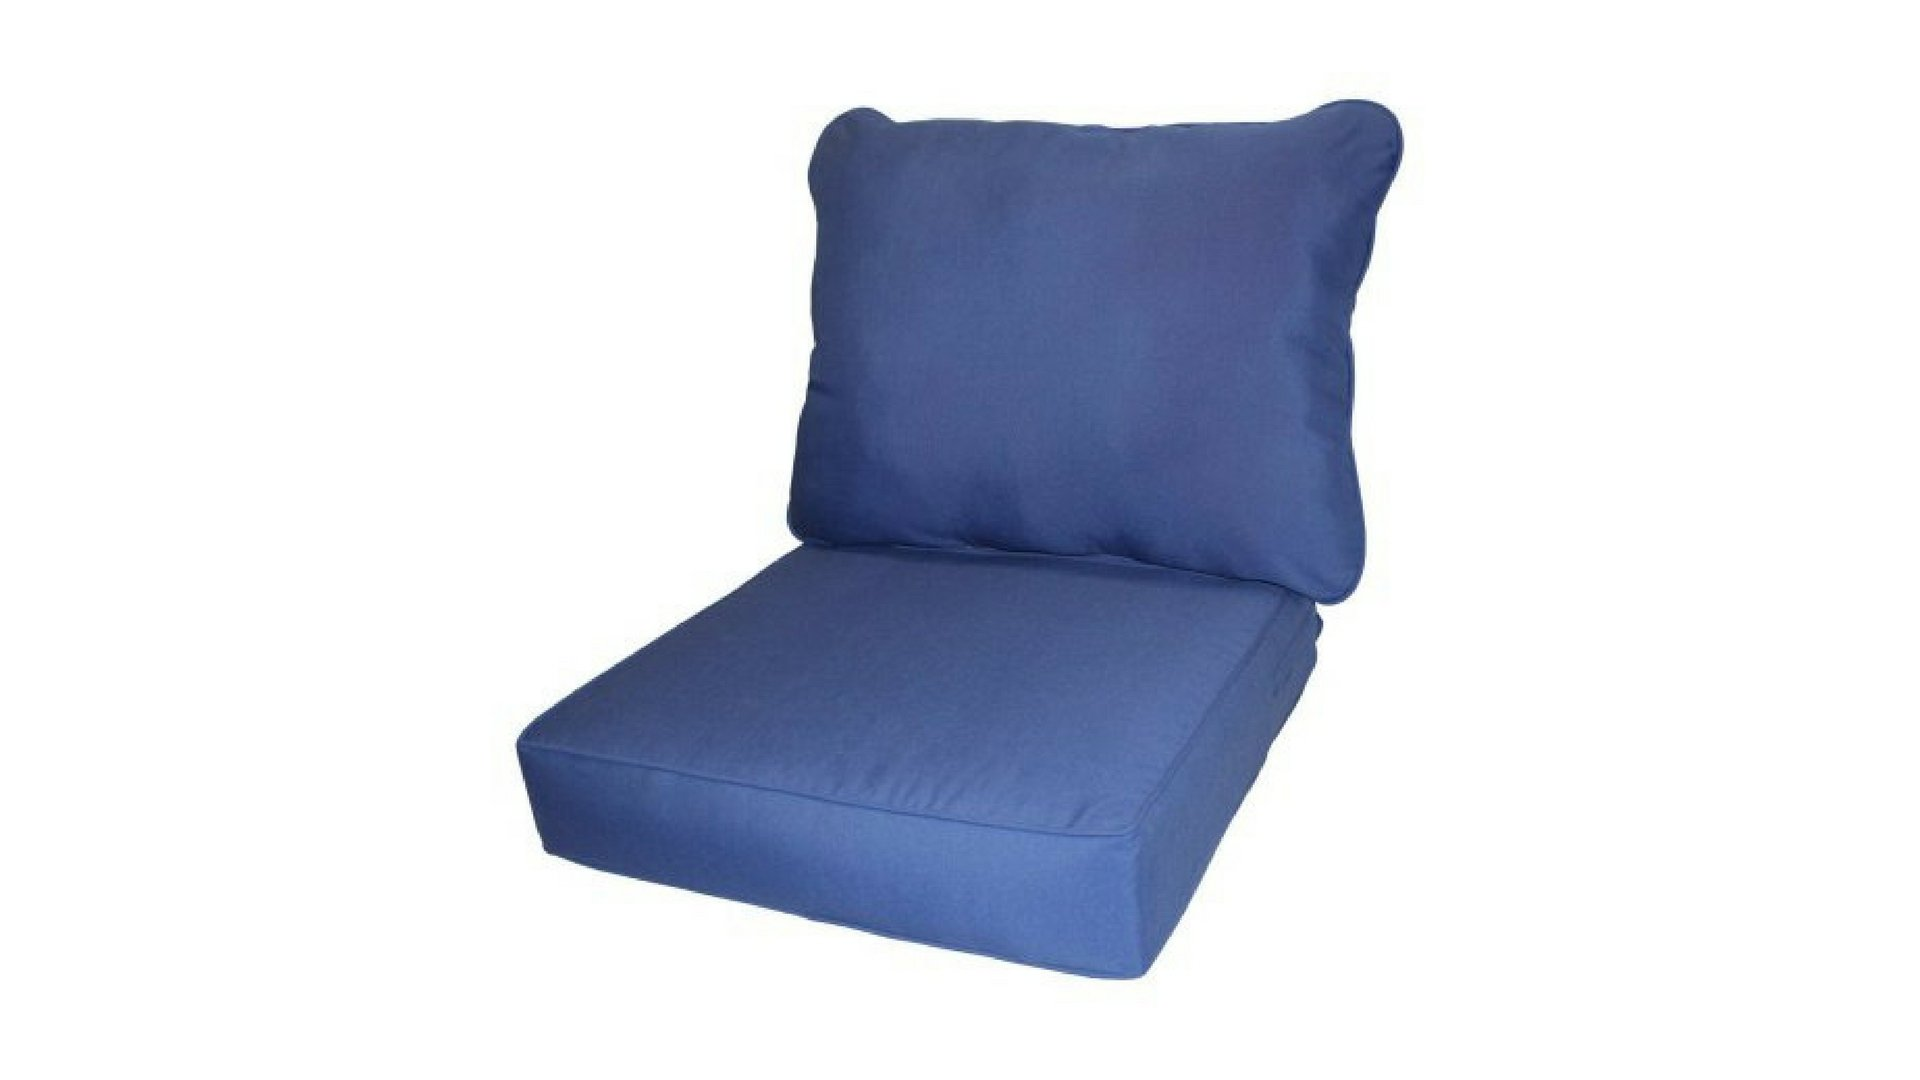 Outdoor Patio Marine Deep-Seat Poly-wrapped Foam Cushions, 100 Percent Outdoor Polyester Fabric by Greendale Home Fashions*